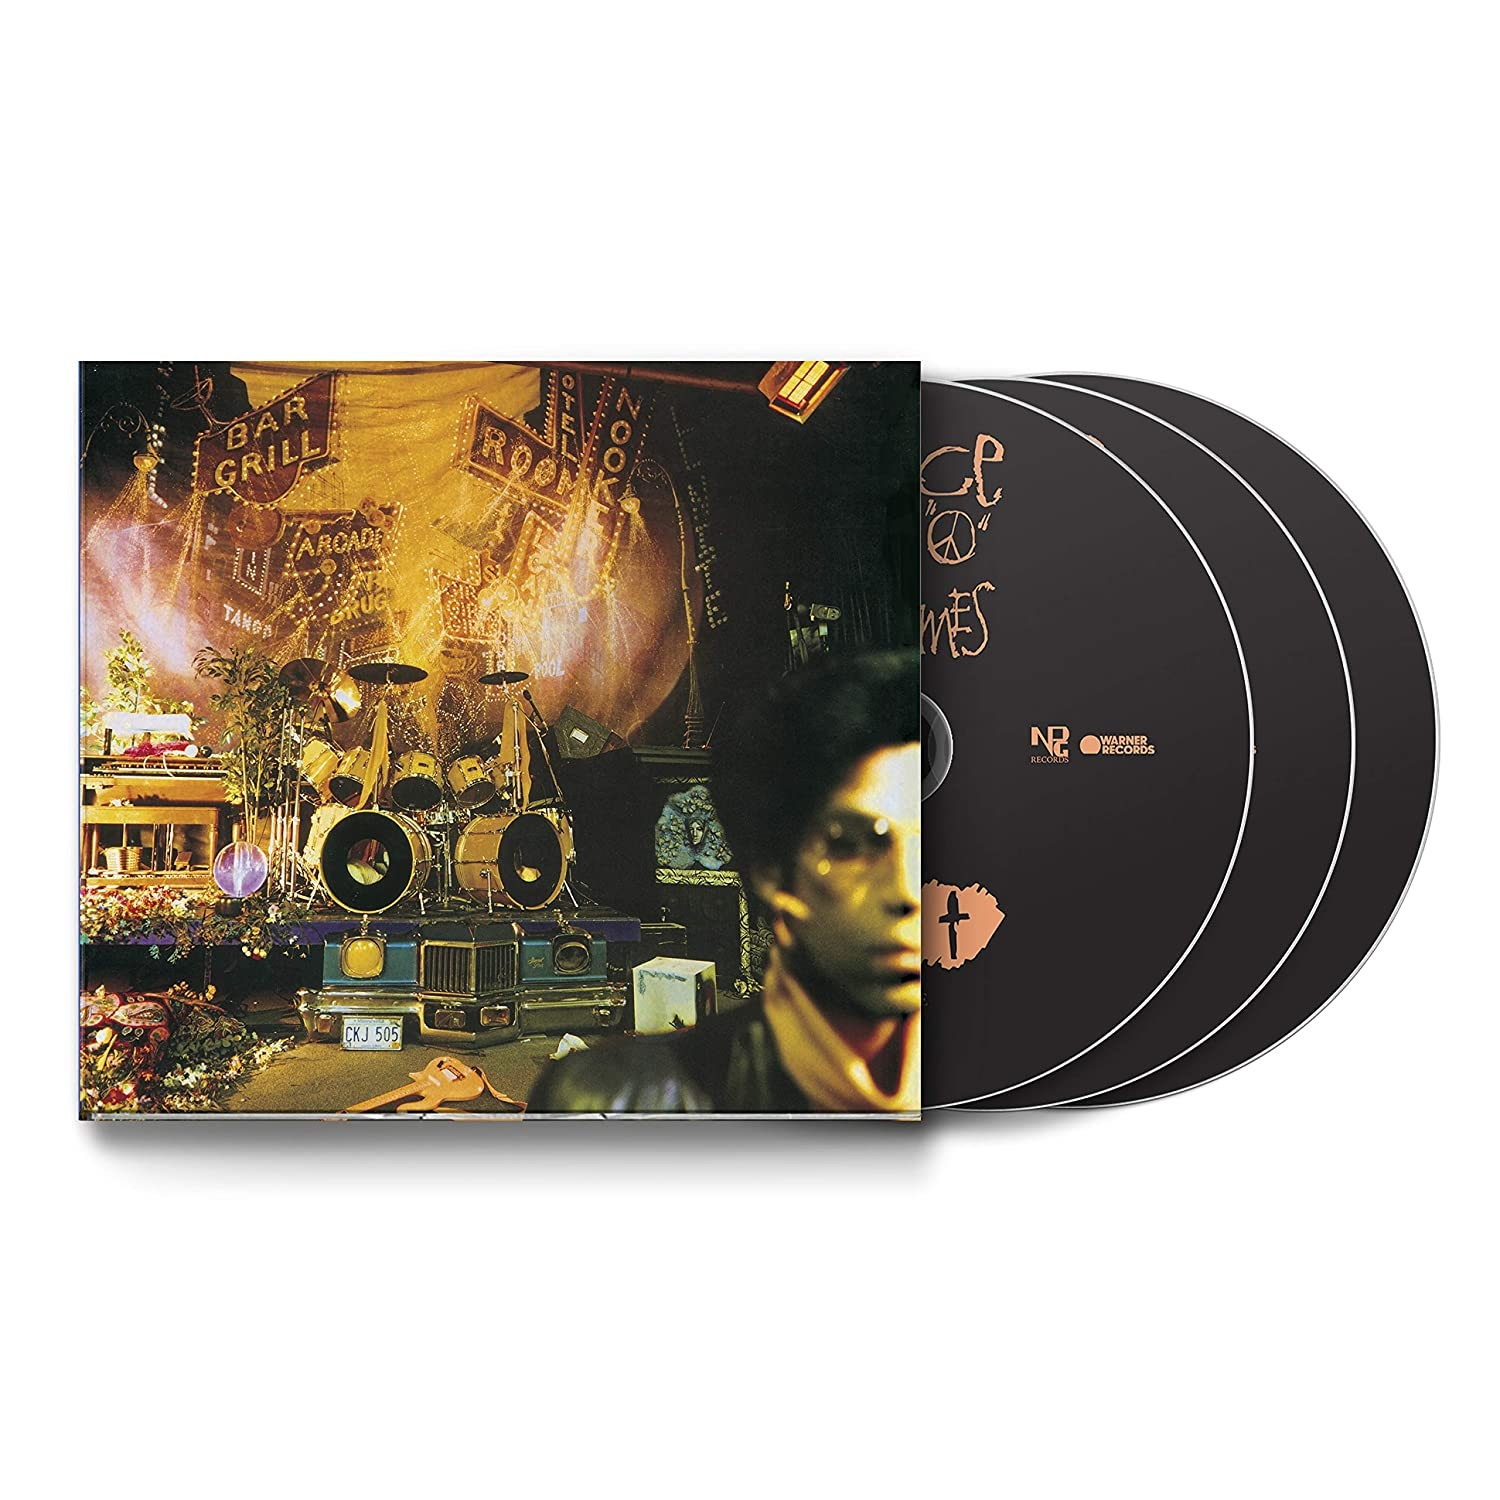 Sign O' the Times (2020 Deluxe) - Prince - Musik - WARNER RECORDS - 0603497846566 - September 25, 2020